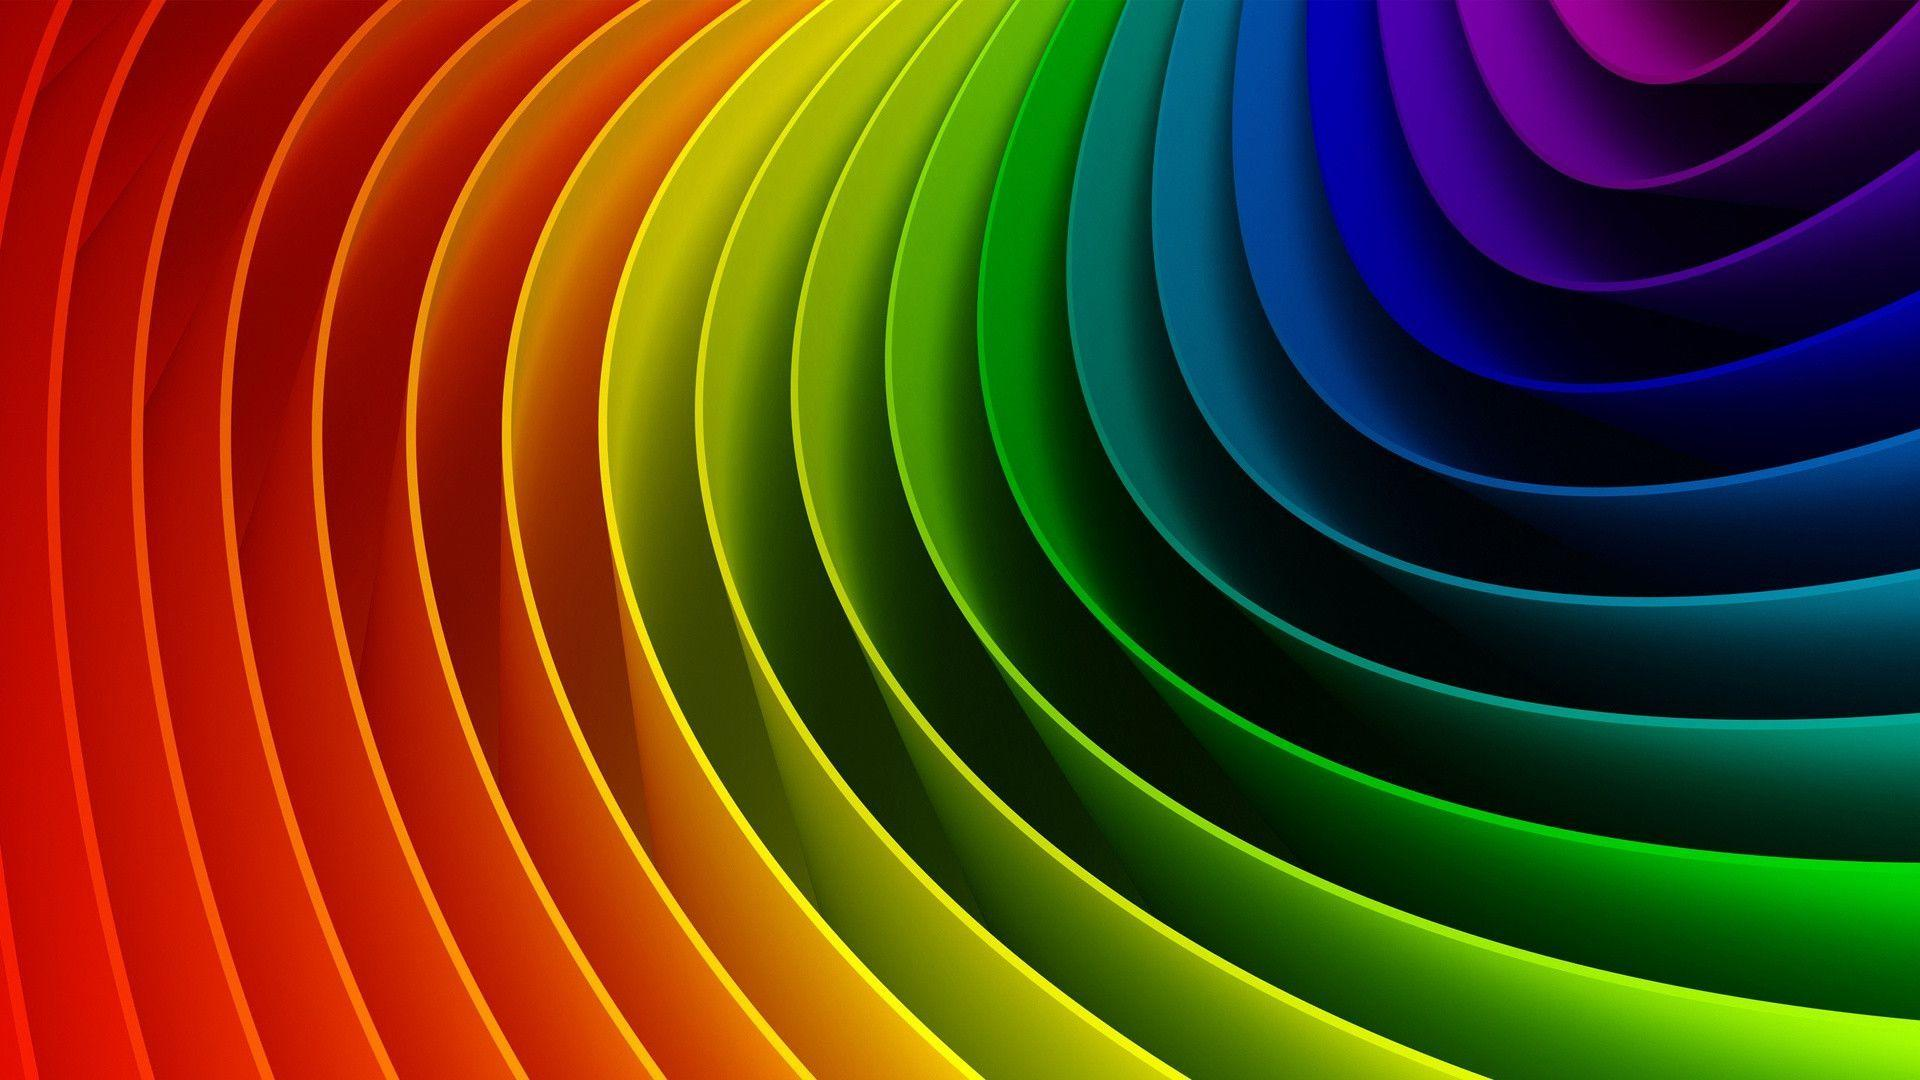 Colorful Backgrounds Wallpapers 1920x1080